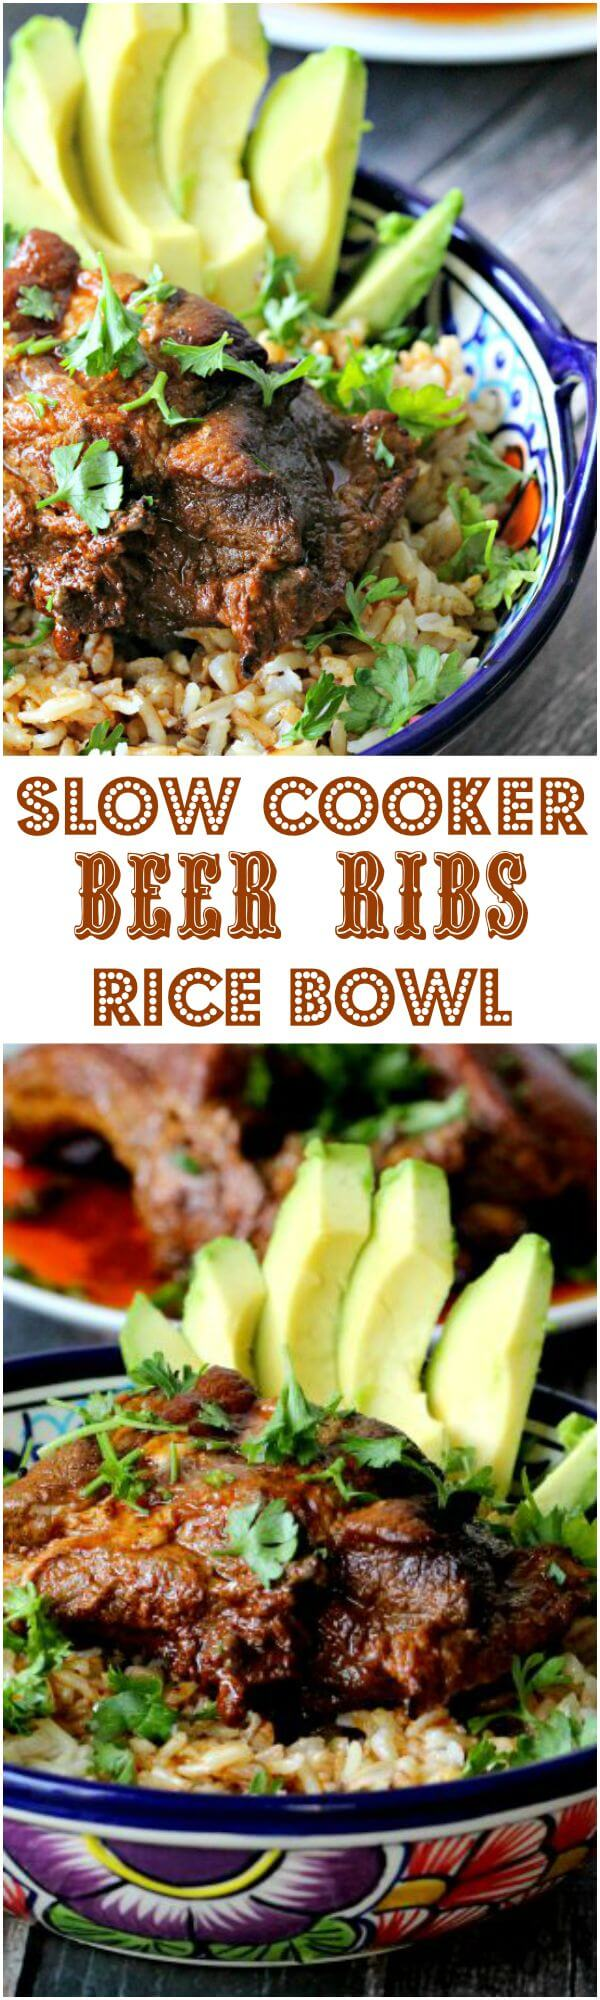 Slow Cooker Beer Ribs Rice Bowl